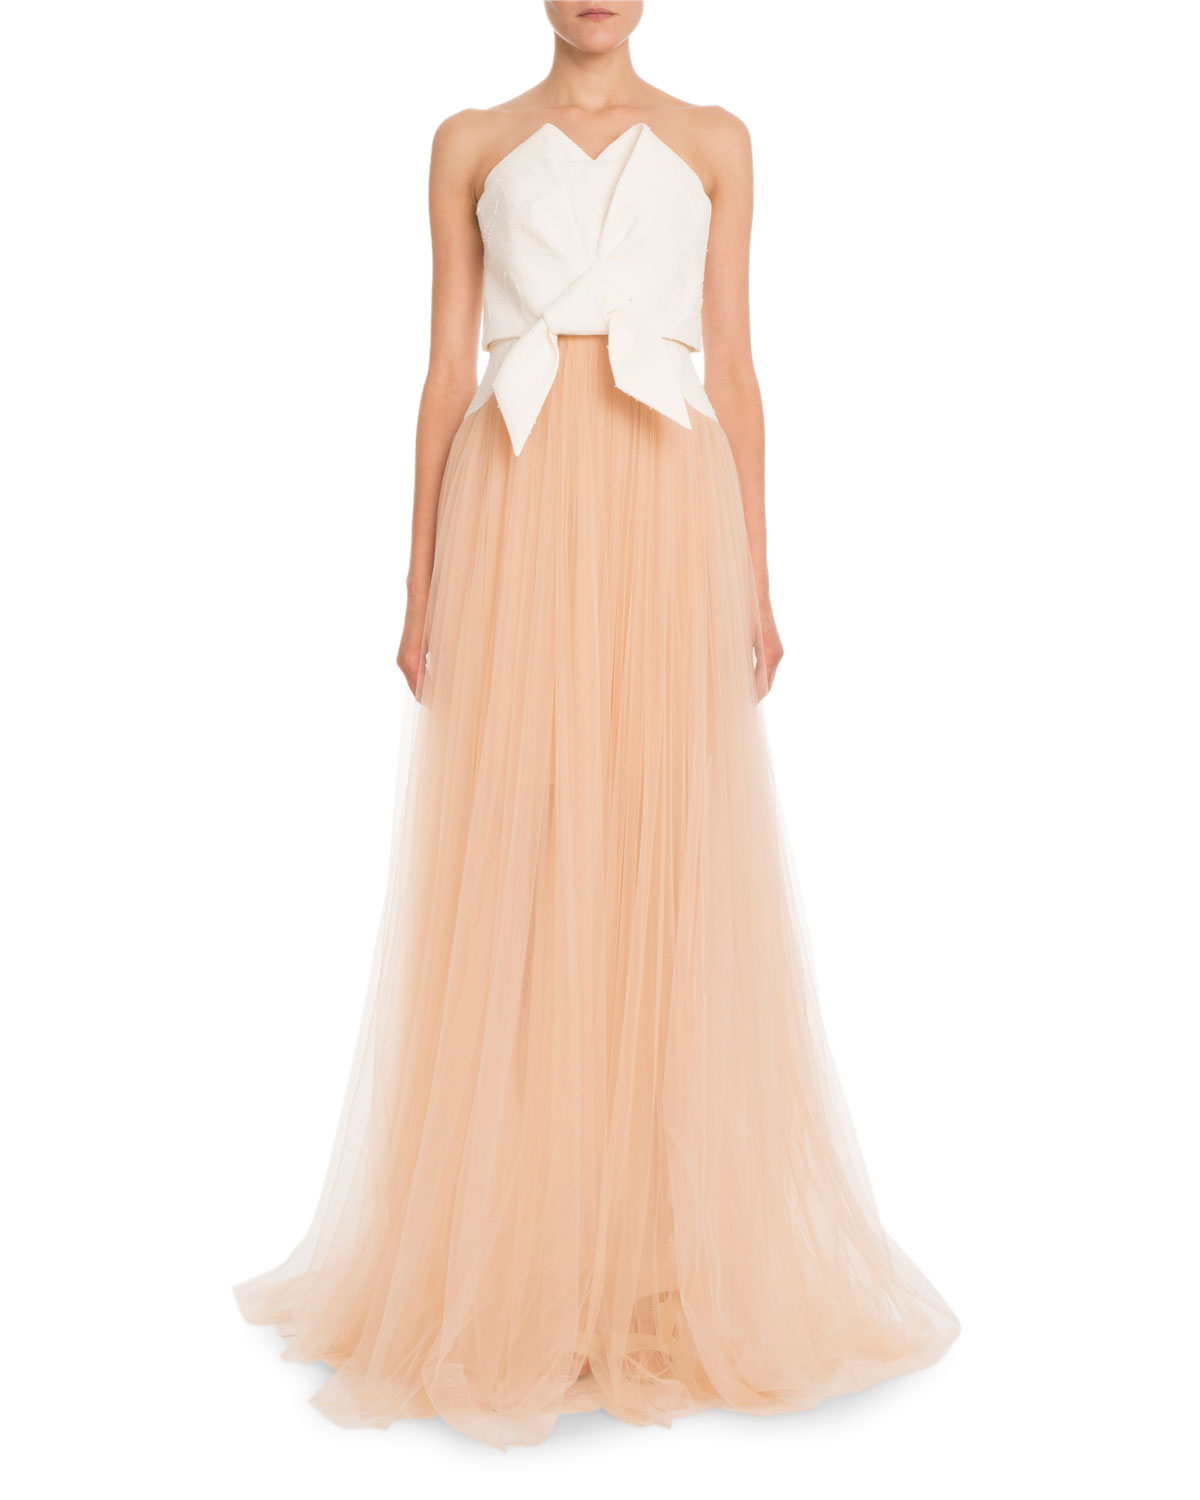 96c1beeb2ac Delpozo Strapless Fil Coupe Folded Bow Top and Tulle Skirt Evening Gown